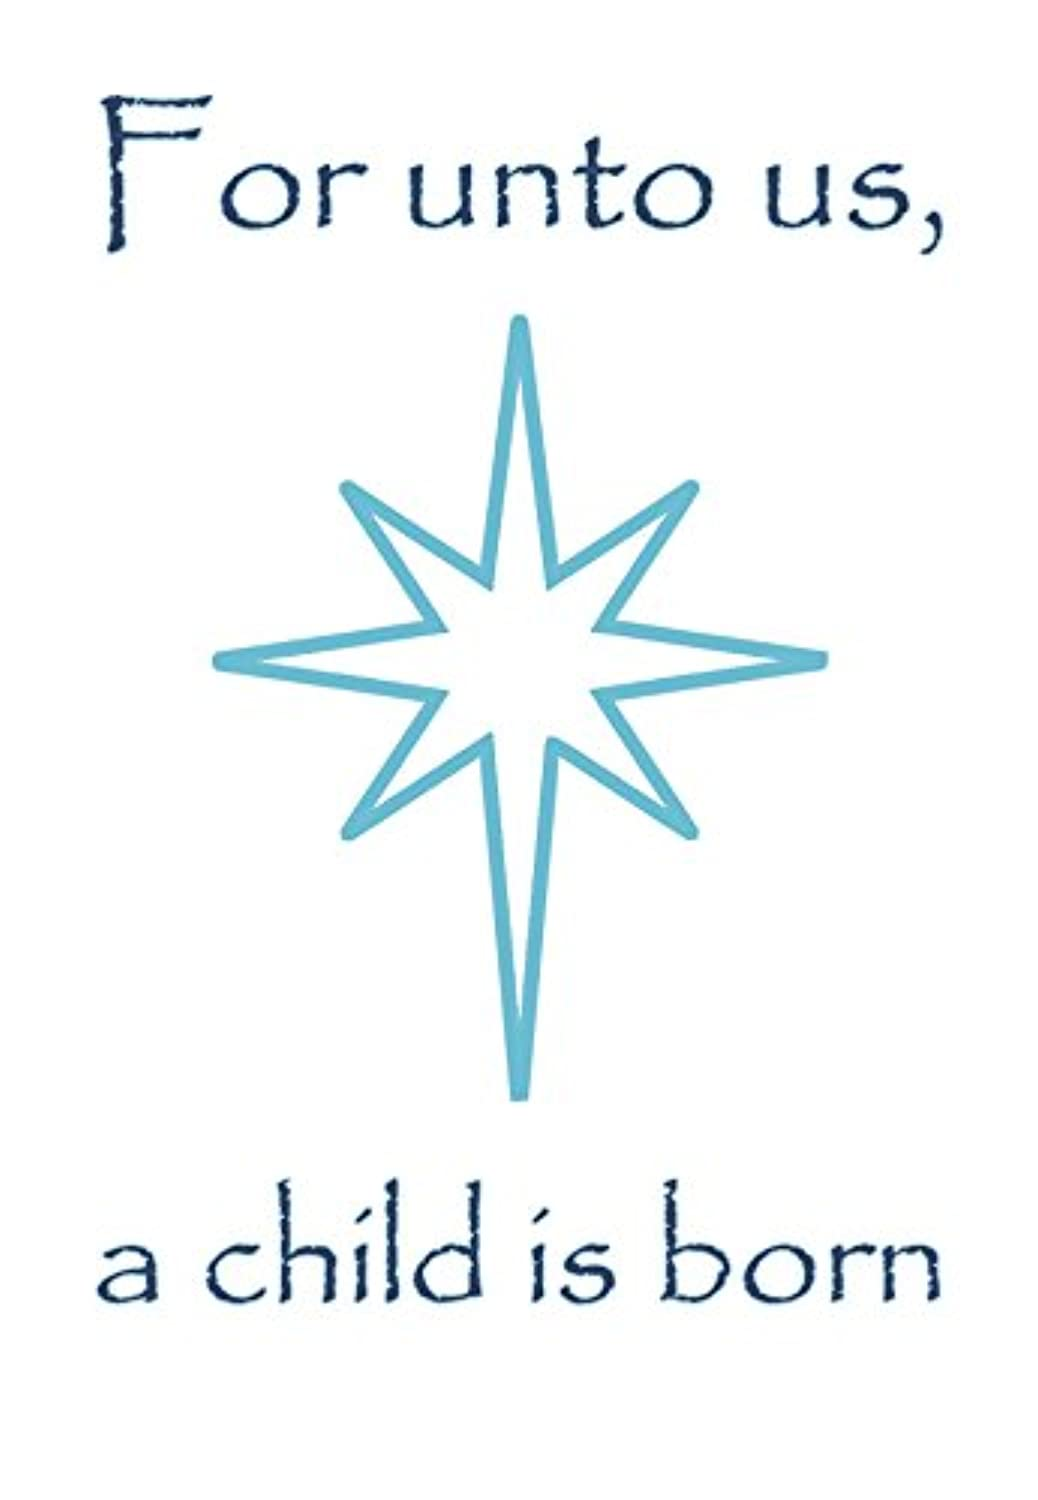 For Unto Us A Child Is BornクリスマスQuote Blue Star Print Inspirational Motivational Poster 13x19 Inch